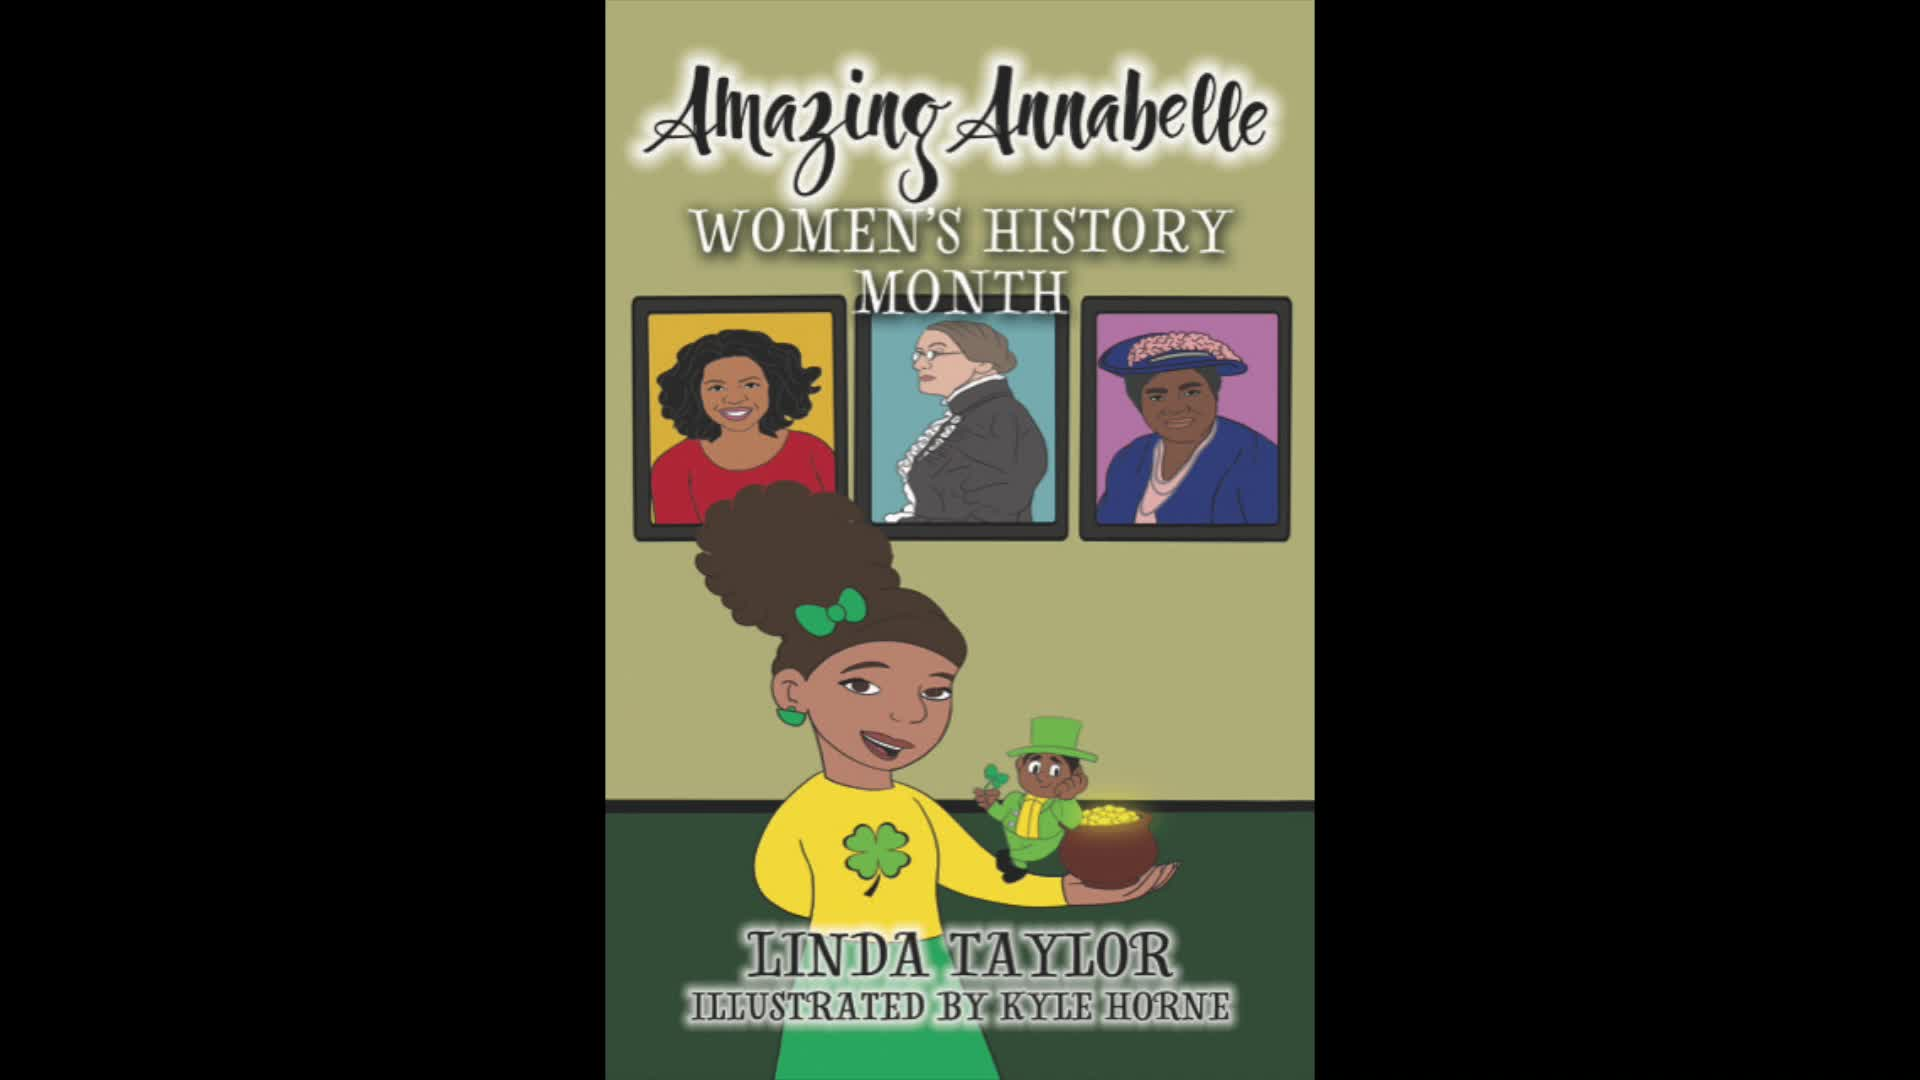 Amazing Annabelle Women History Month Chapter 2